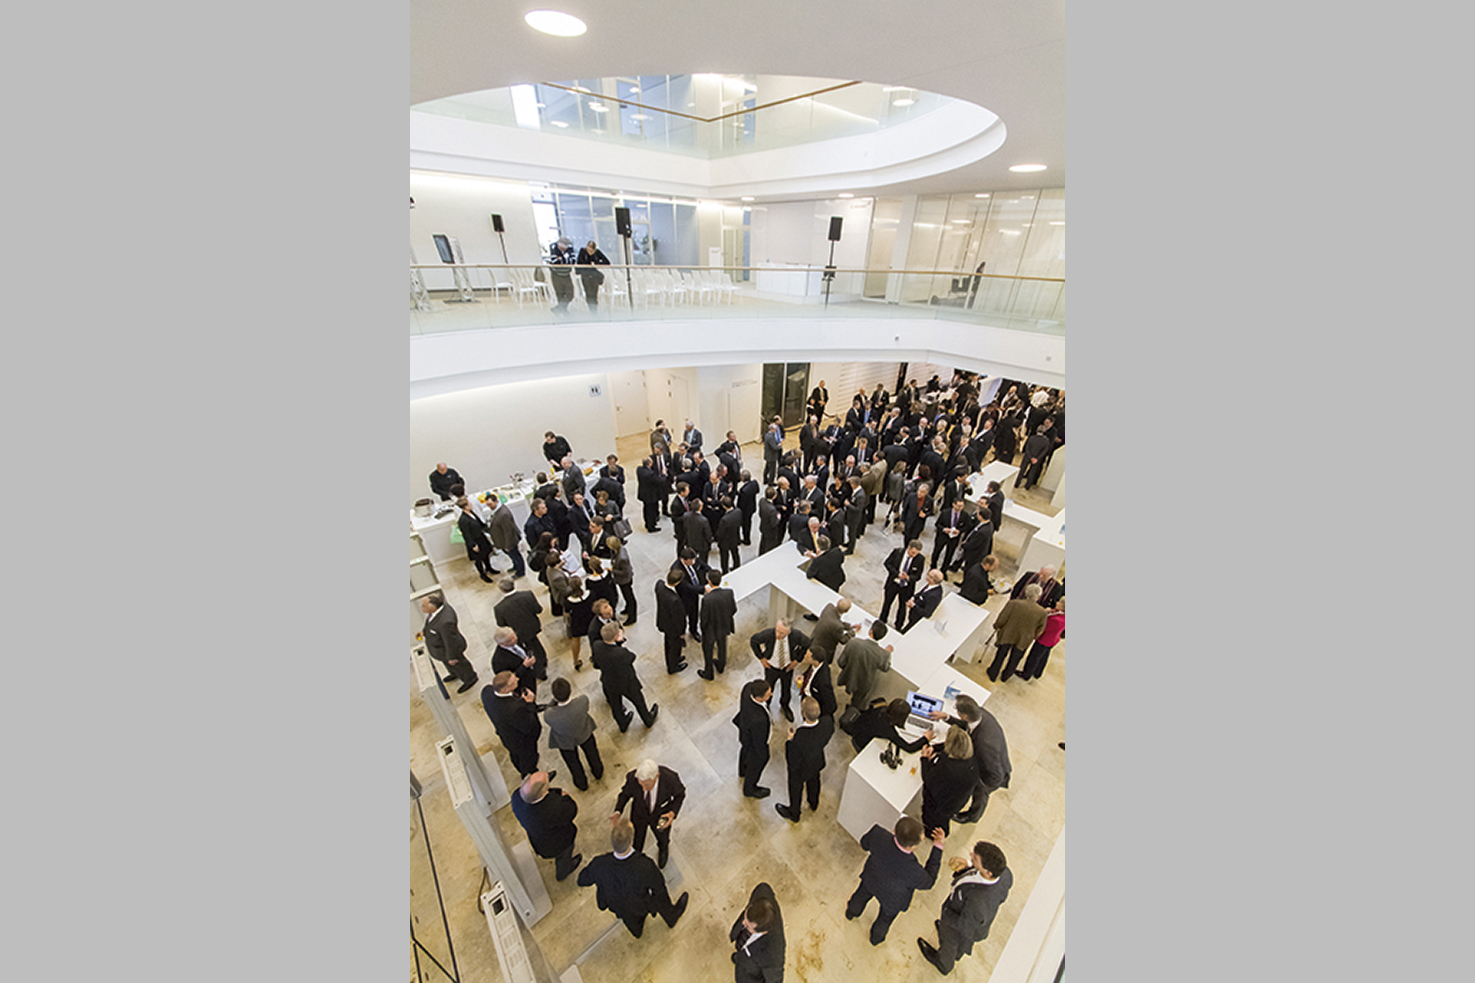 On October 31, 2013, over 250 invited guests celebrated the inauguration of the Clariant Innovation Center – the company's largest single investment to date in an innovative and successful future.